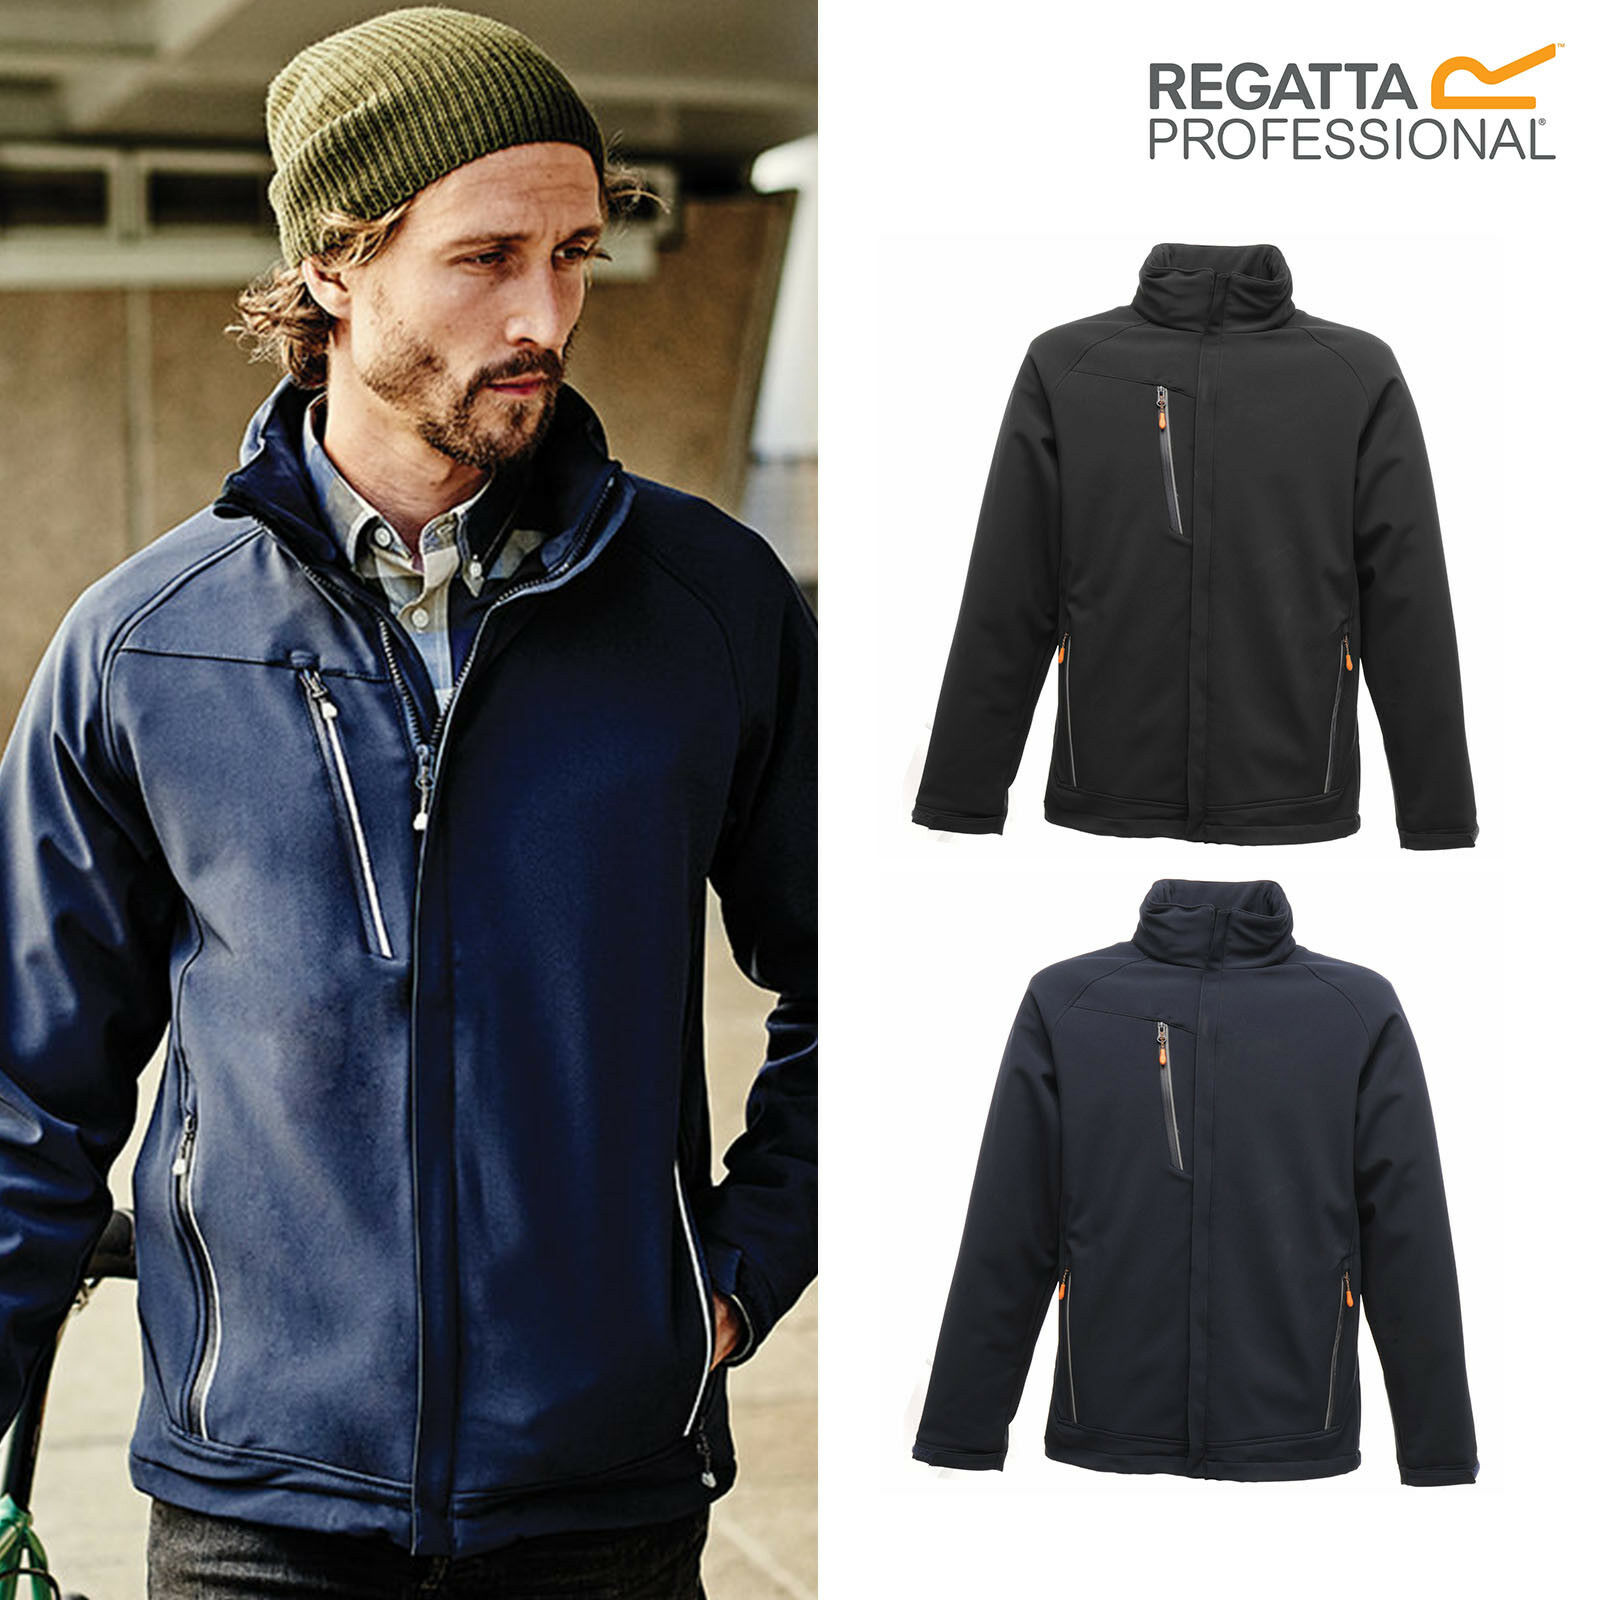 Regatta Profesional Apex  Softshell Impermeable y Transpirable TRA670  Tienda 2018